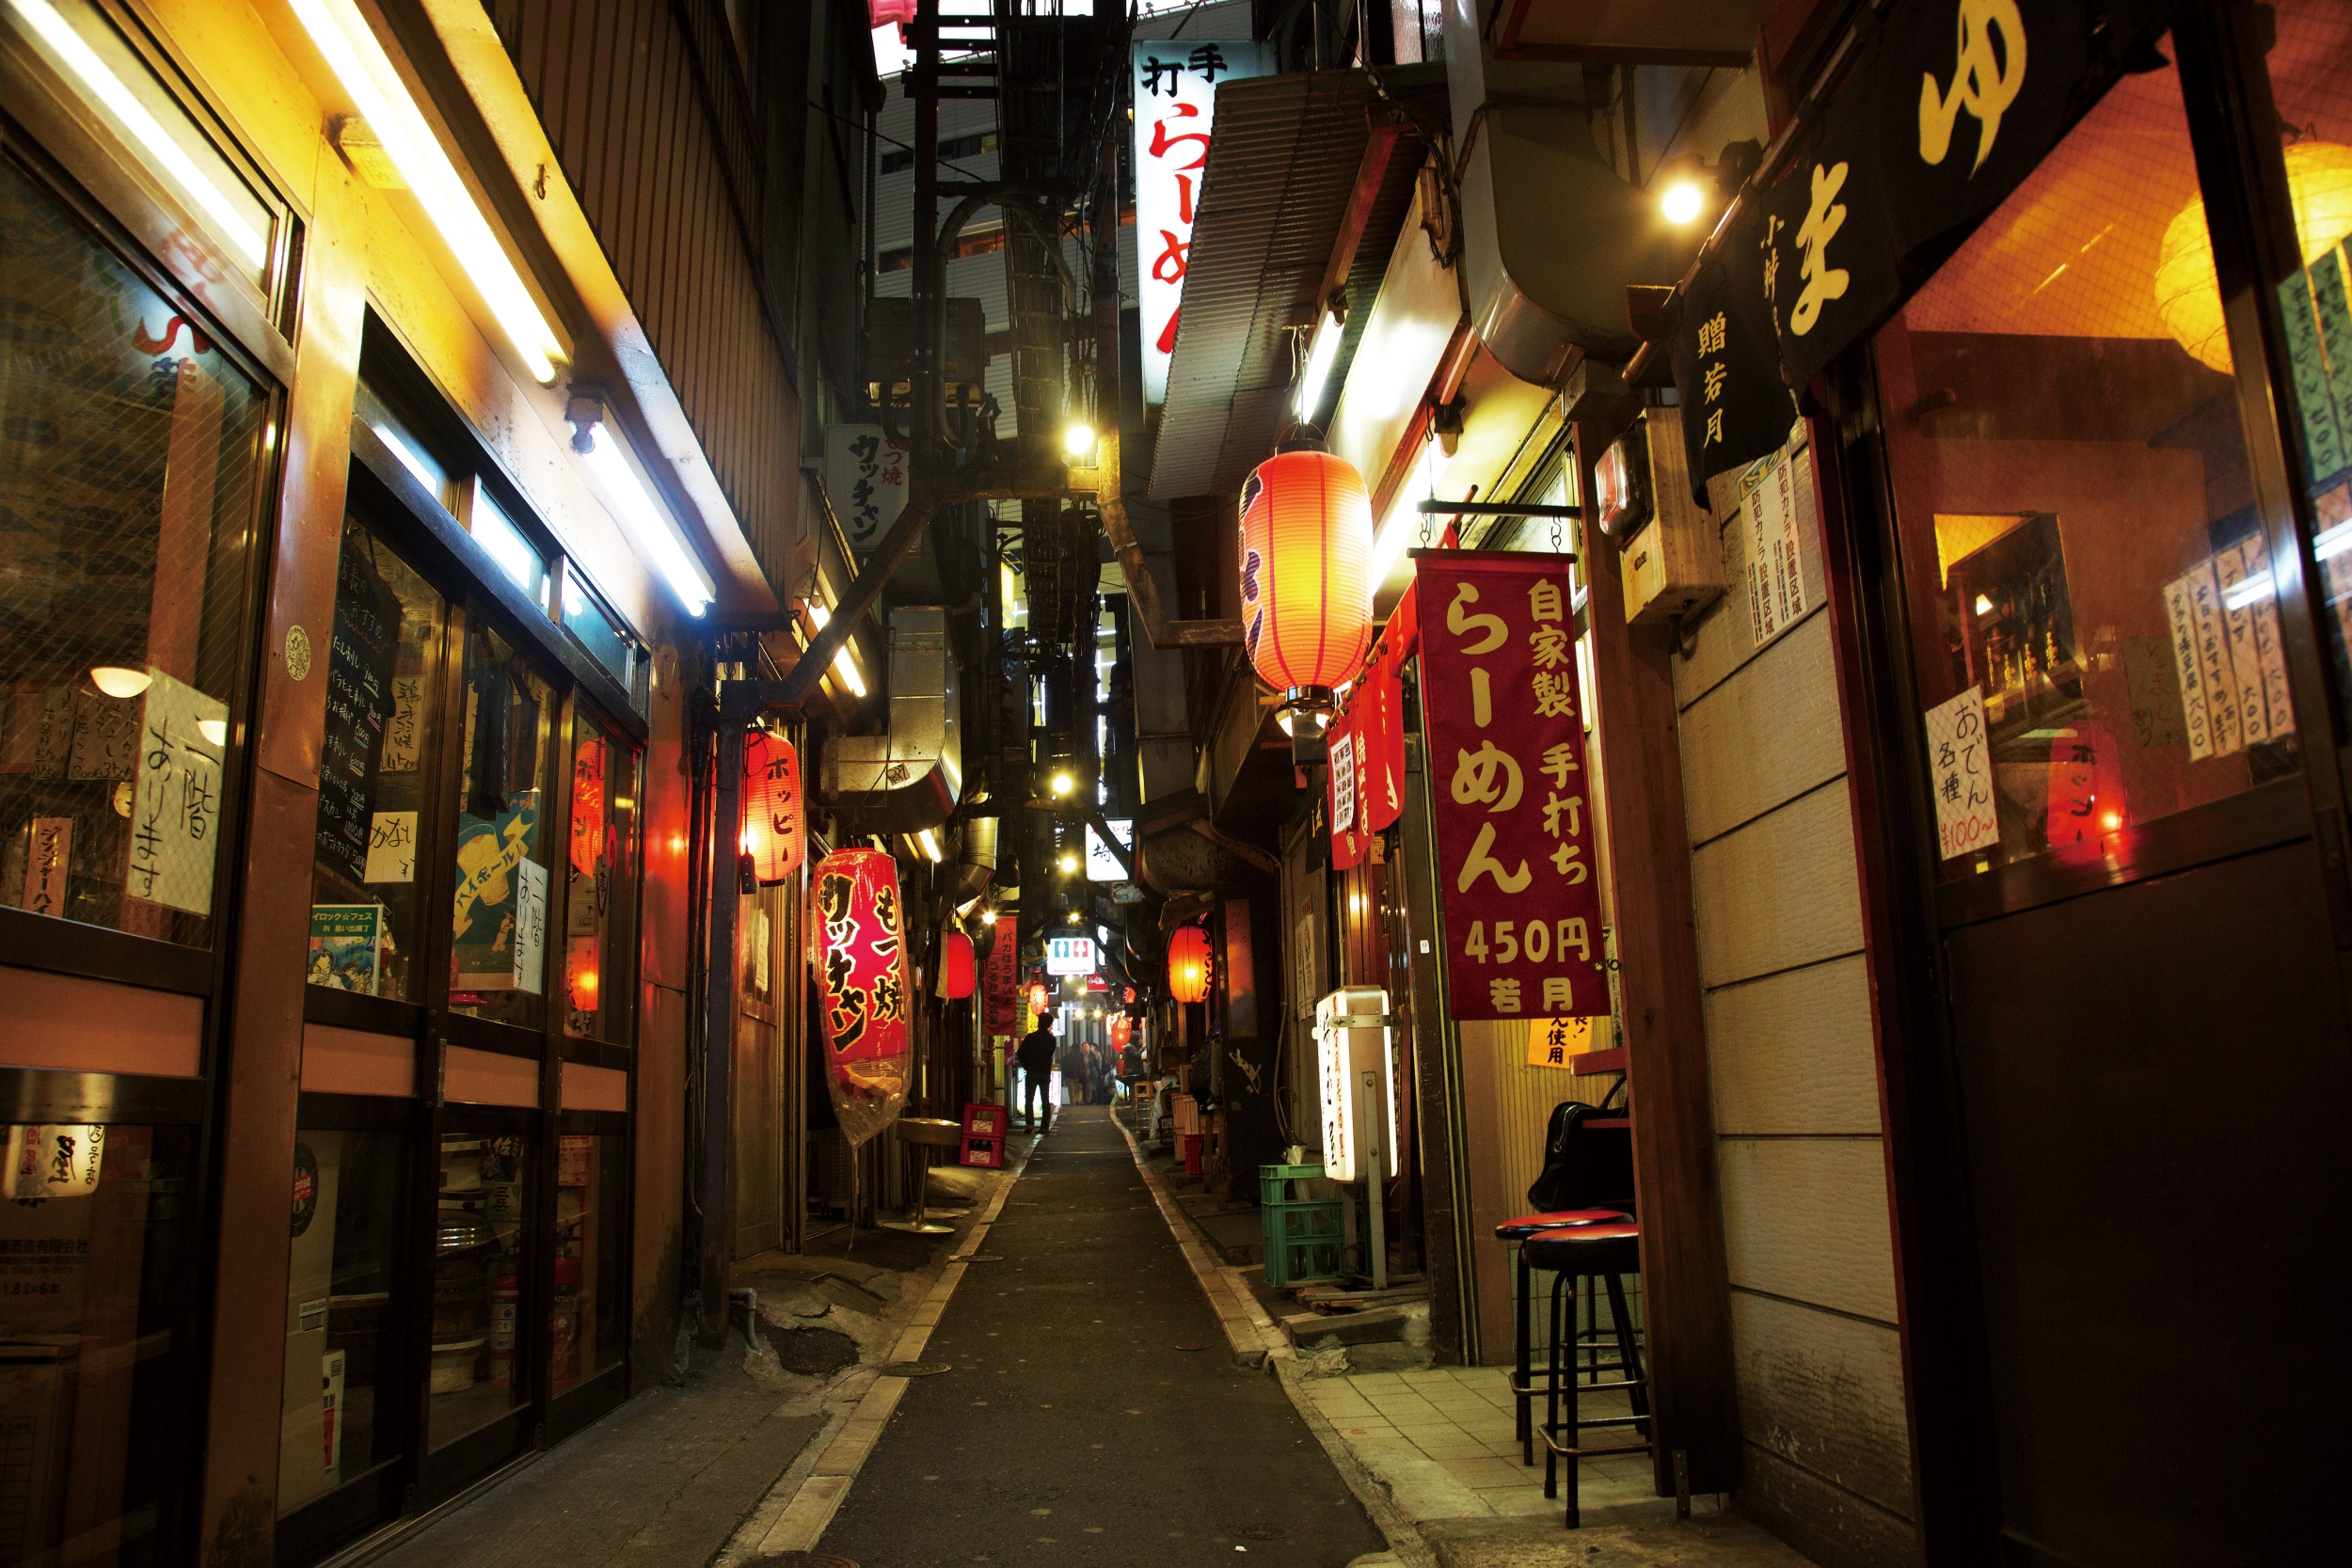 Free download high resolution image - free image free photo free stock image public domain picture -思い出横丁新宿東京